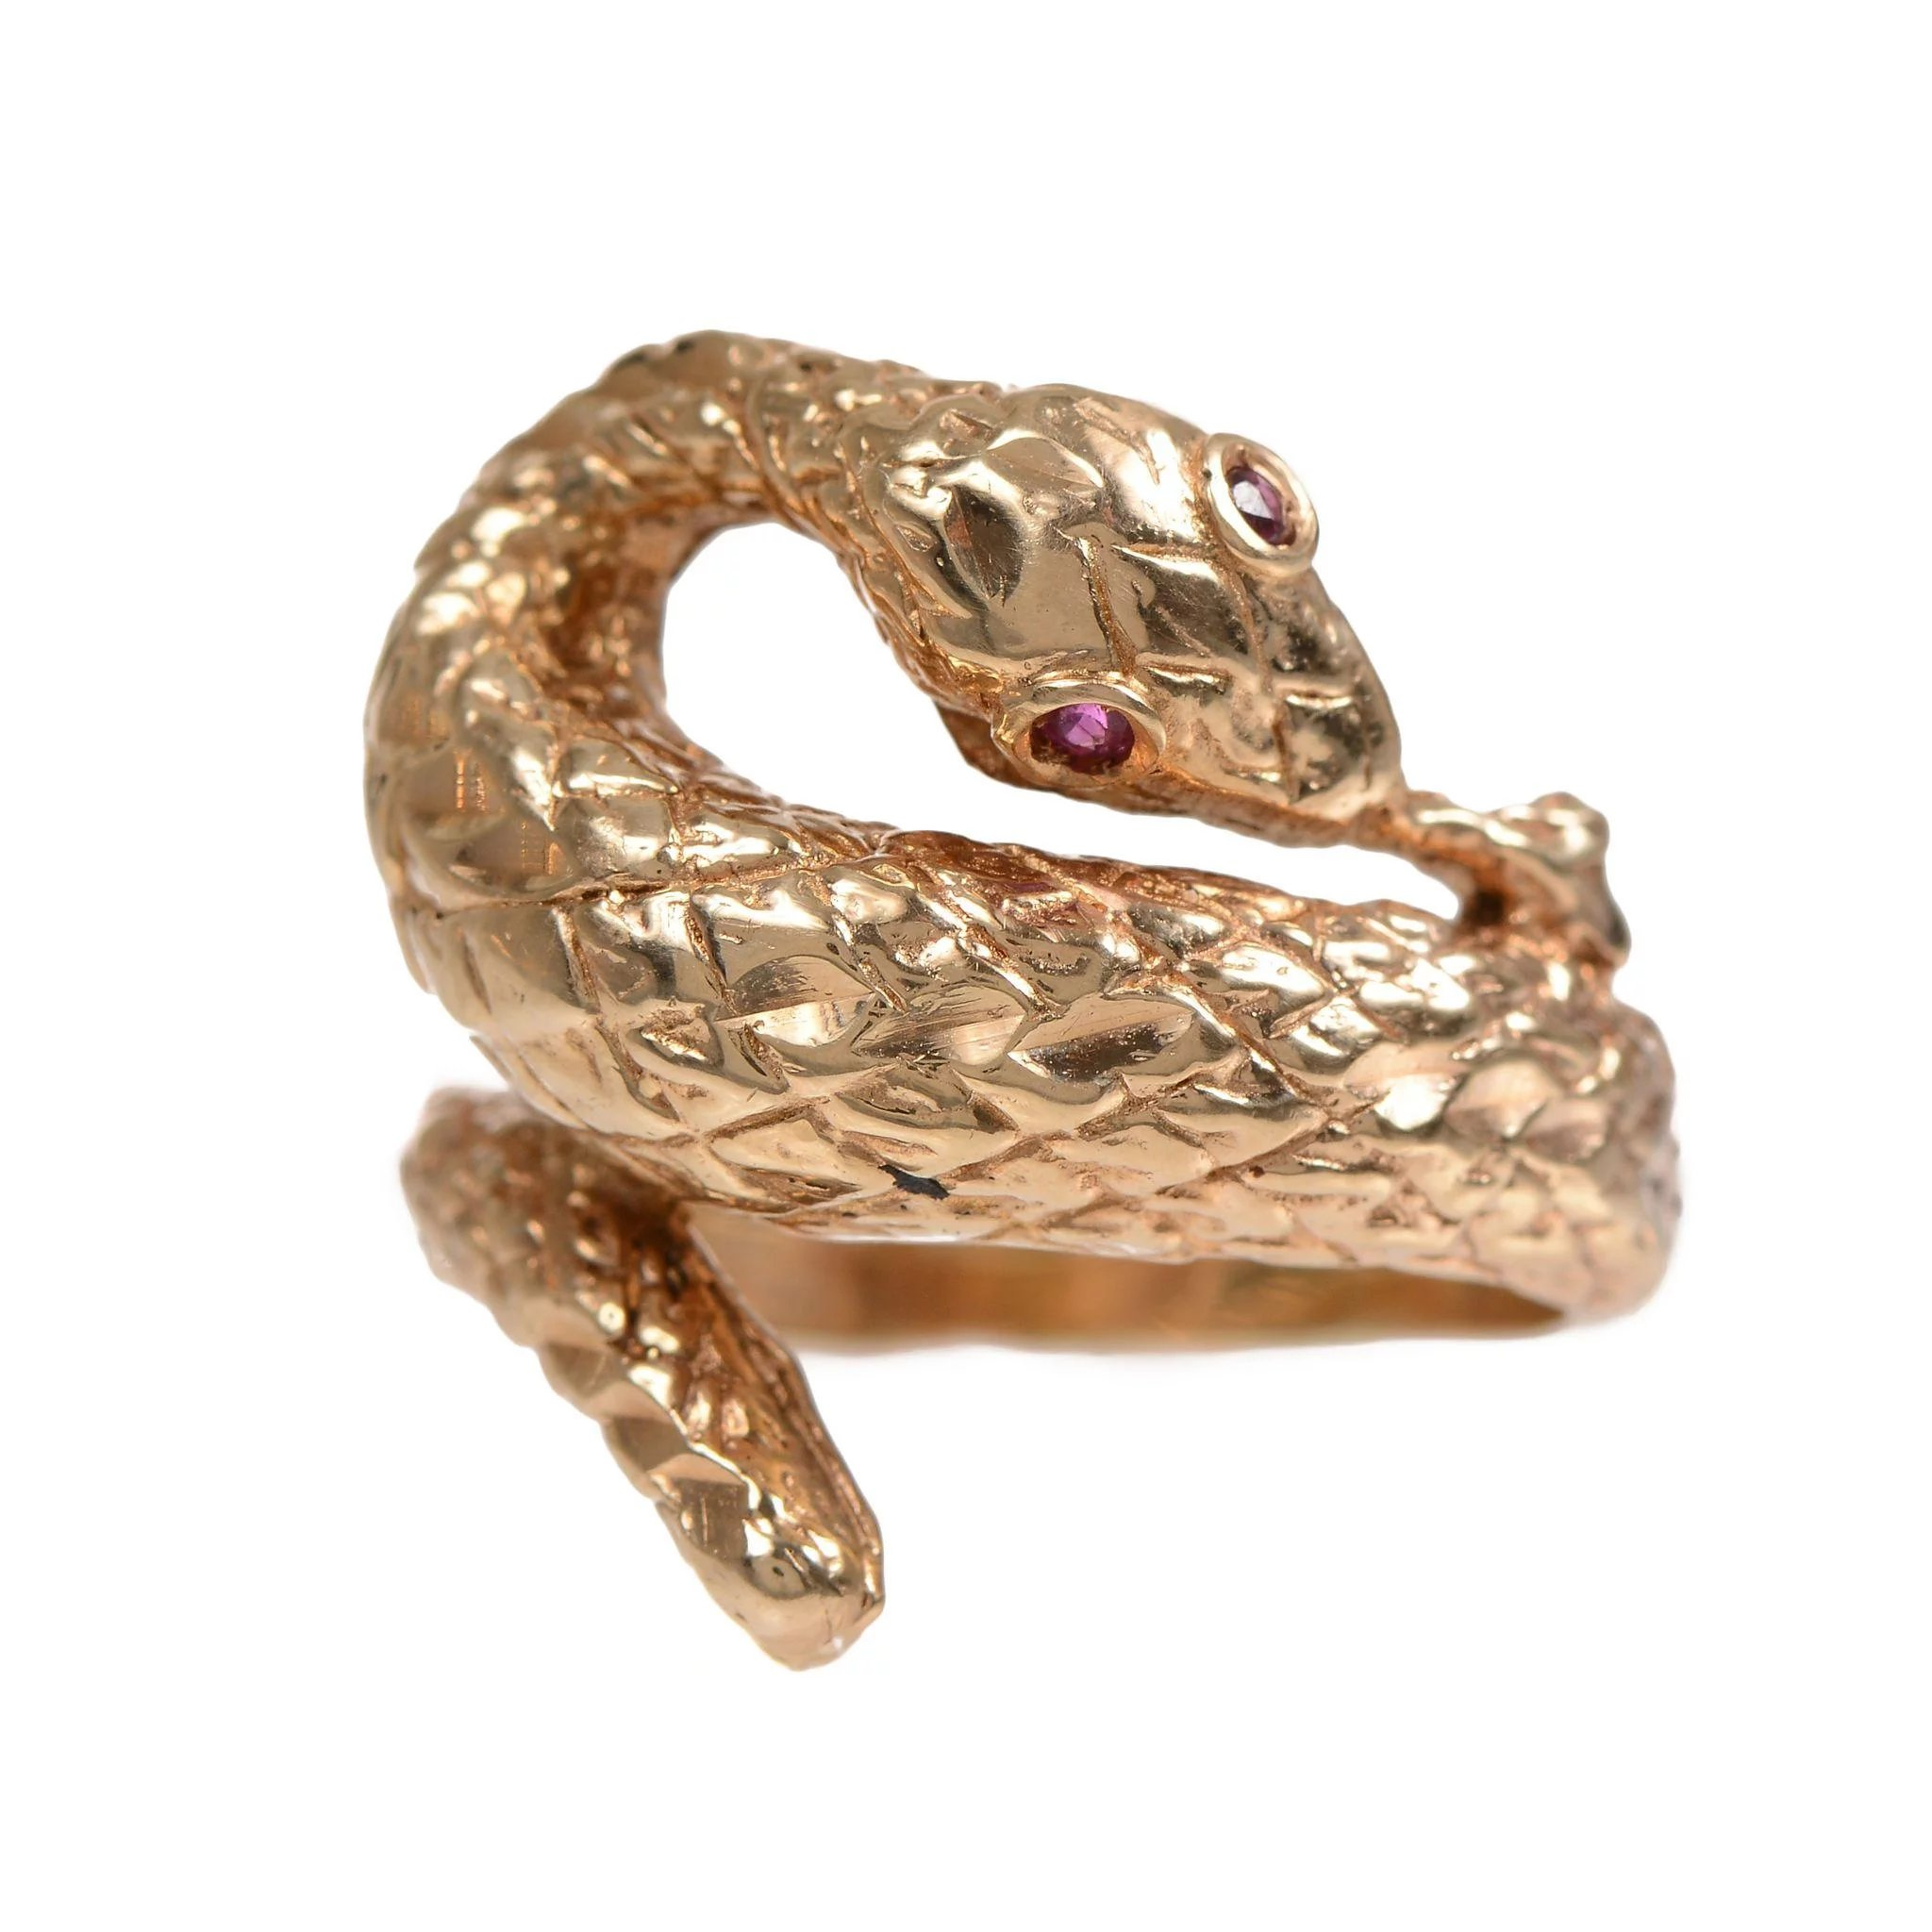 class ring nouveau and love art vintage serpent signet pin rings antique